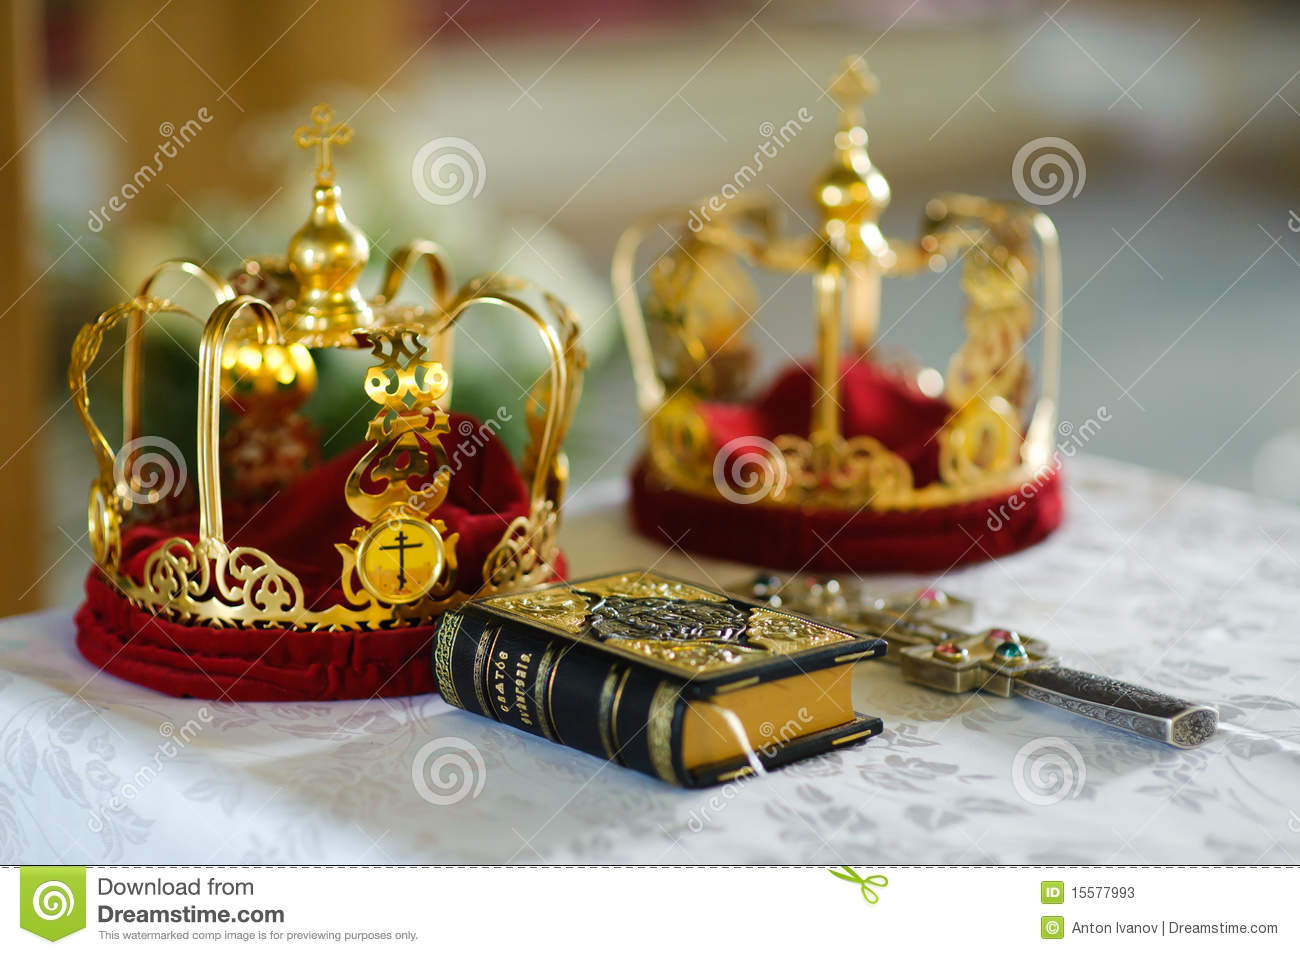 stock photo orthodox wedding crowns cross glass wine church image wedding crowns Orthodox wedding crowns gospel and cross Stock Photos